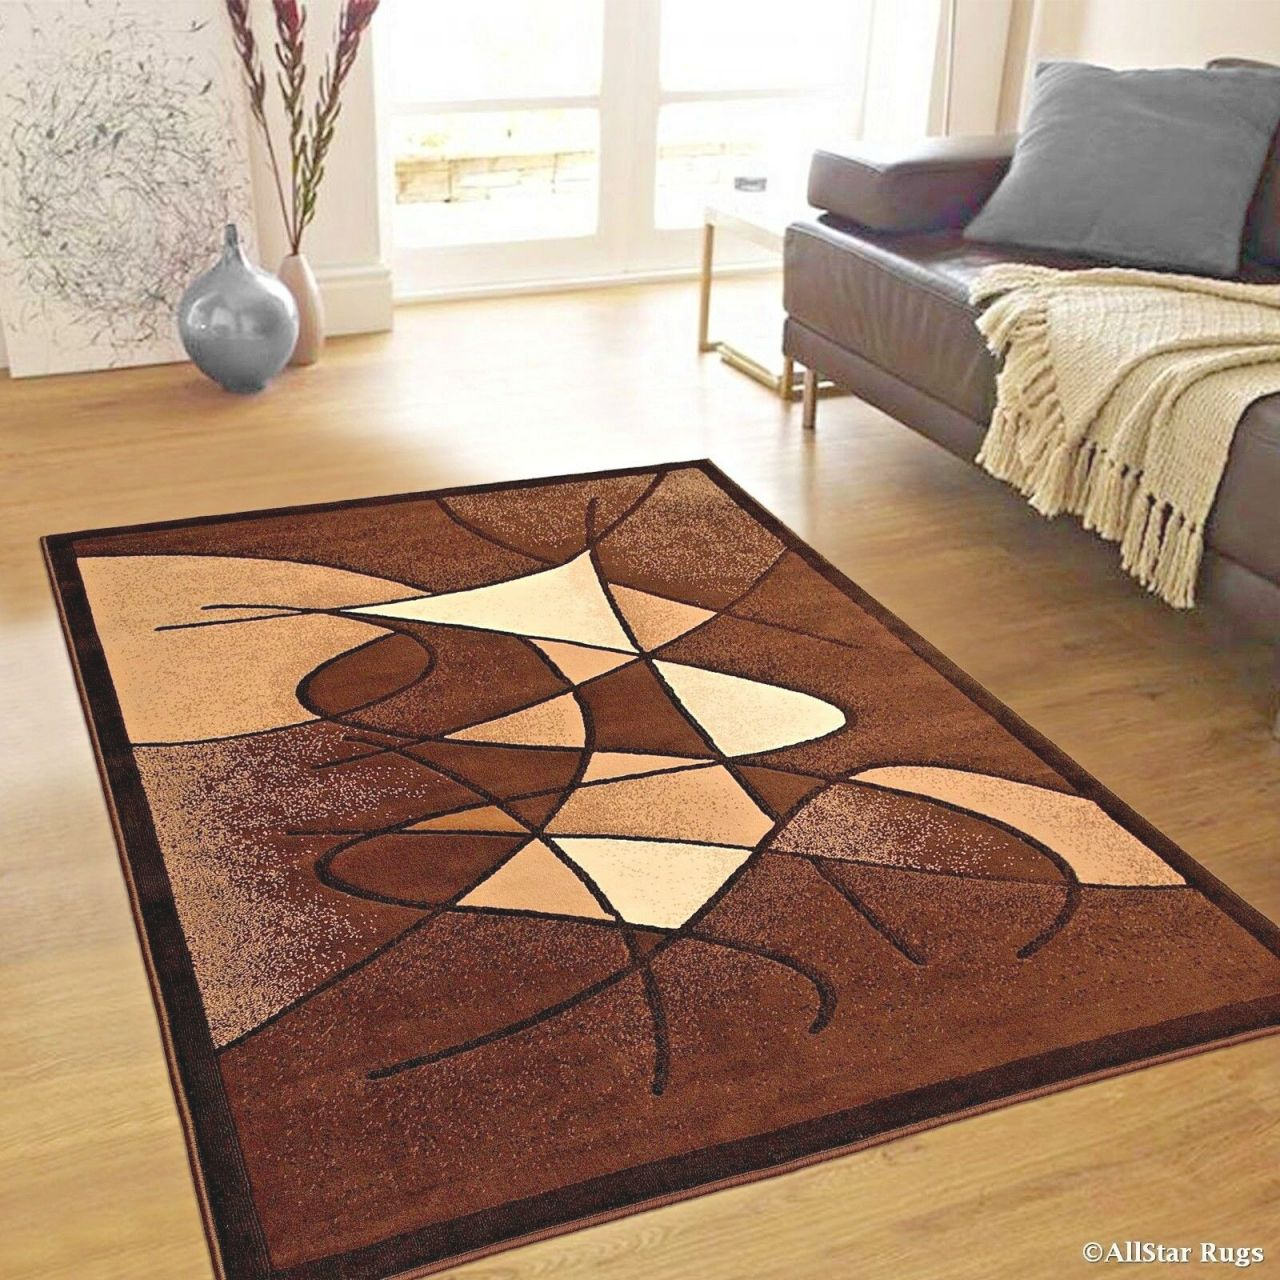 Details About Rugs Area Rugs Carpets 8X10 Rug Modern Large Floor Room 5X7 Cool Brown Cute Rugs with Big Area Rugs For Living Room